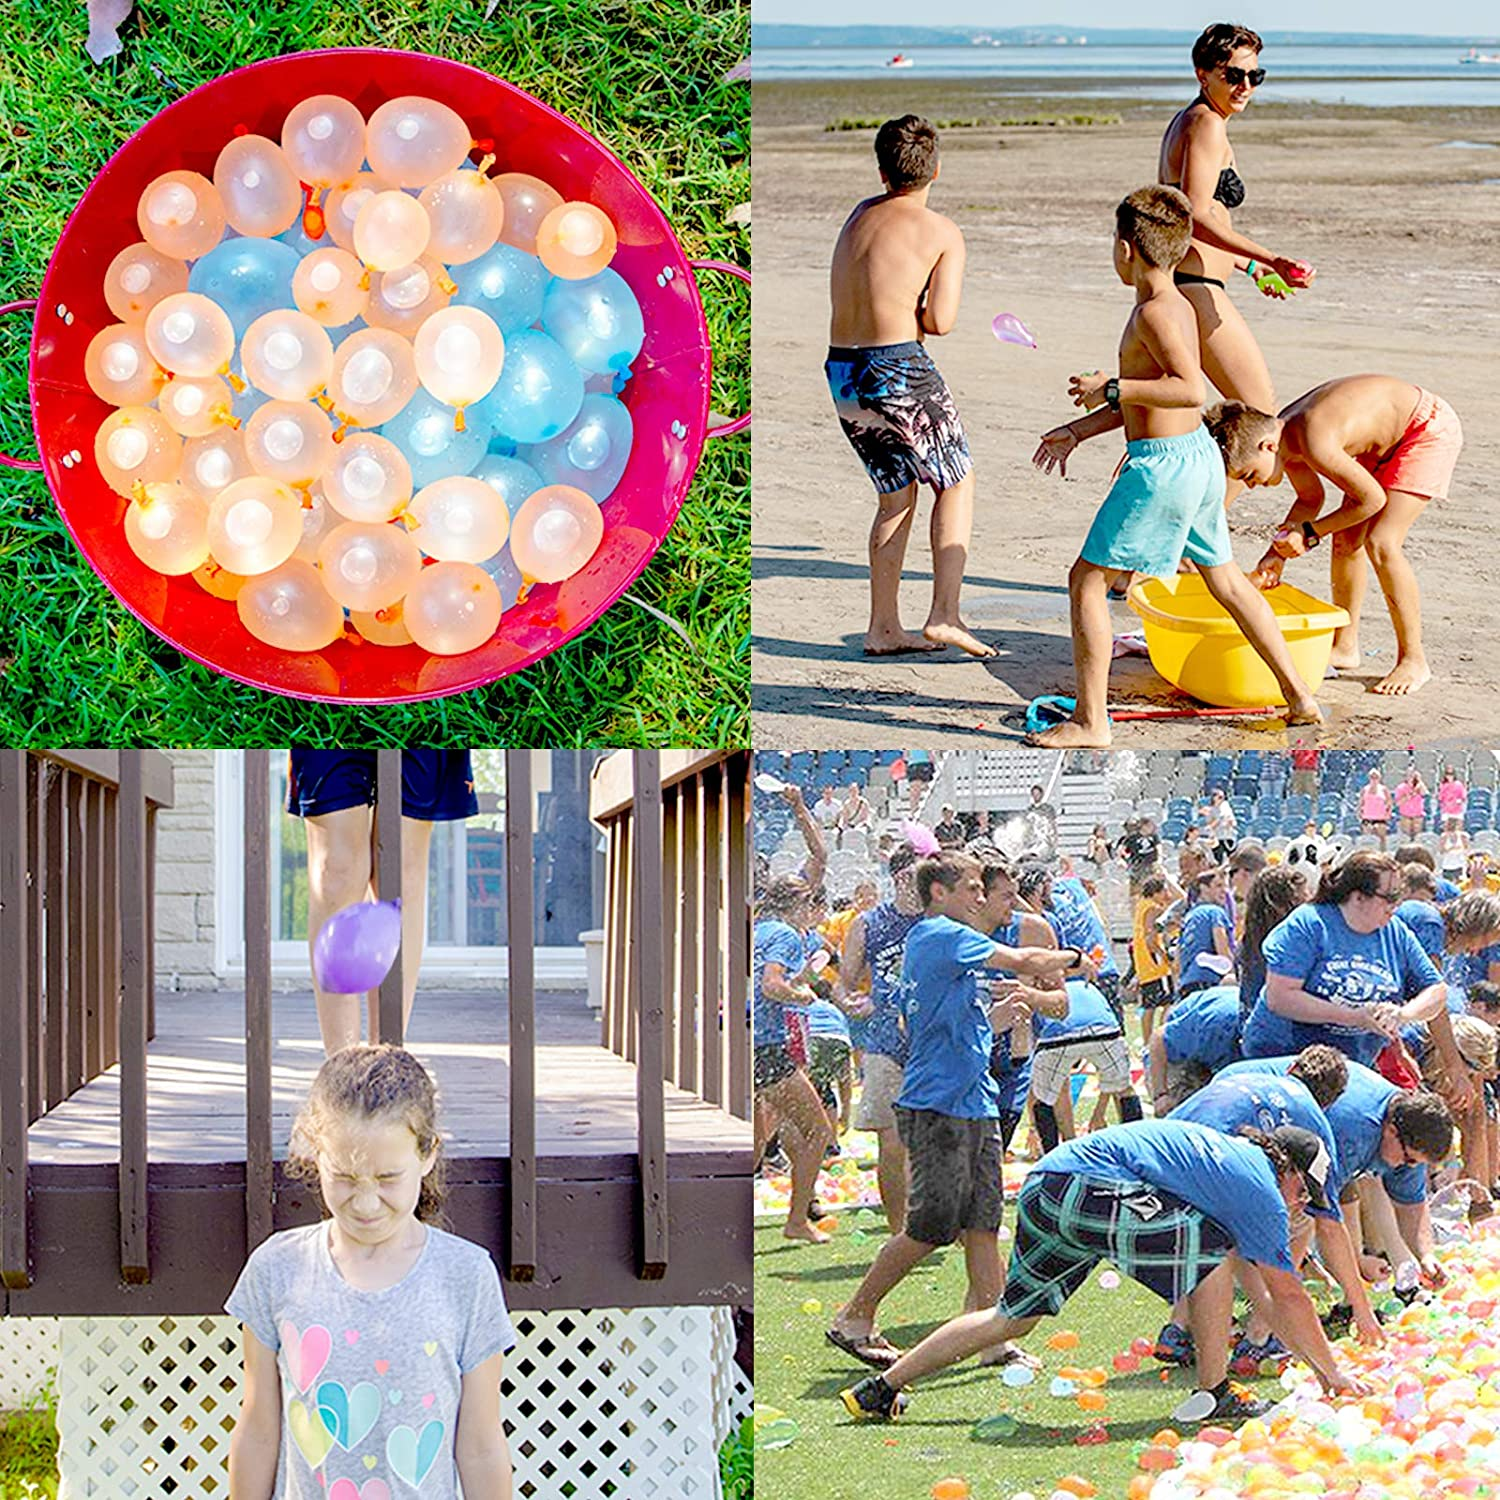 800 Pack Water Balloons for Kids for Fighting Games Hibery Water Balloons Summer Splash Fun for Kids /& Adults with Hose Nozzle set